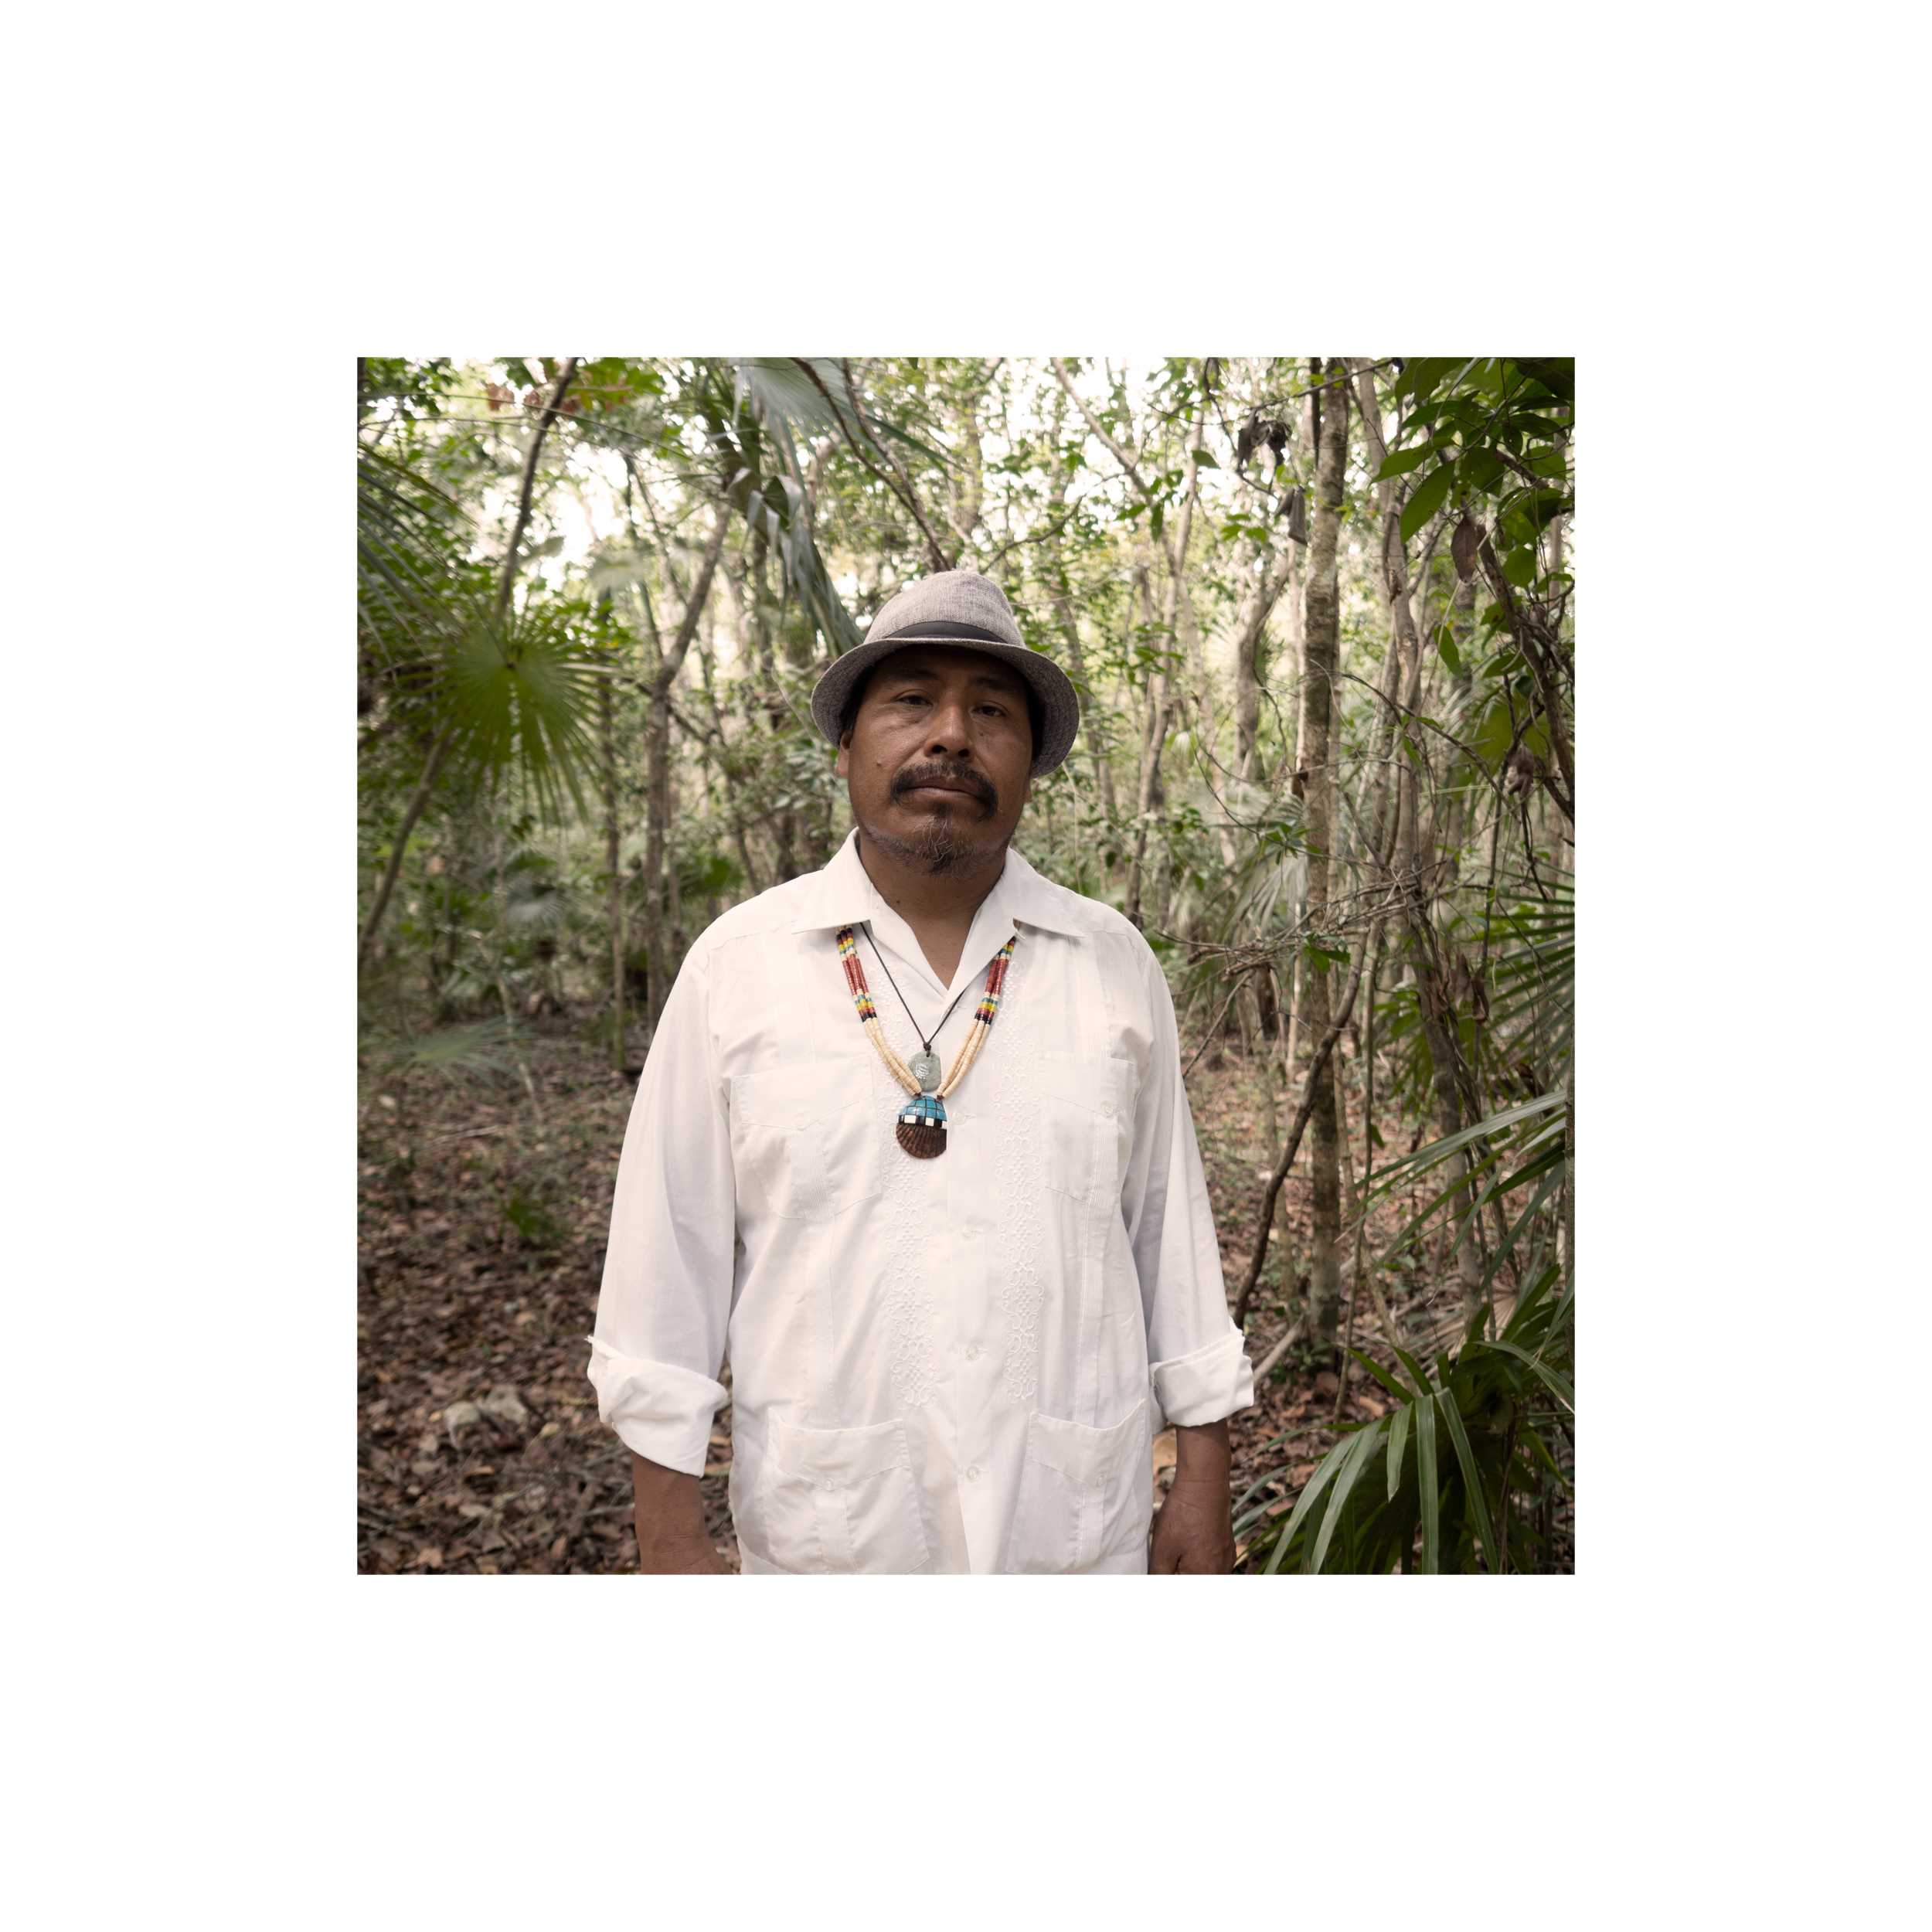 "Antun Kojtom - Antun was born on June 13, 1969 in Ch'ixaltontik an isolated community at 2 hour walking from Tenejapa a small village of Chiapas (south of Mexico) a community where they only speak their native tongue and dirt truck's open in 2002 and electricity in 2006.When he was 18 years old him and his older brother moved to Puerto Vallarta, Jalisco (Where he learn how to speak spanish) to work as unskilled labourer for a group of painters, called ""Juntos"